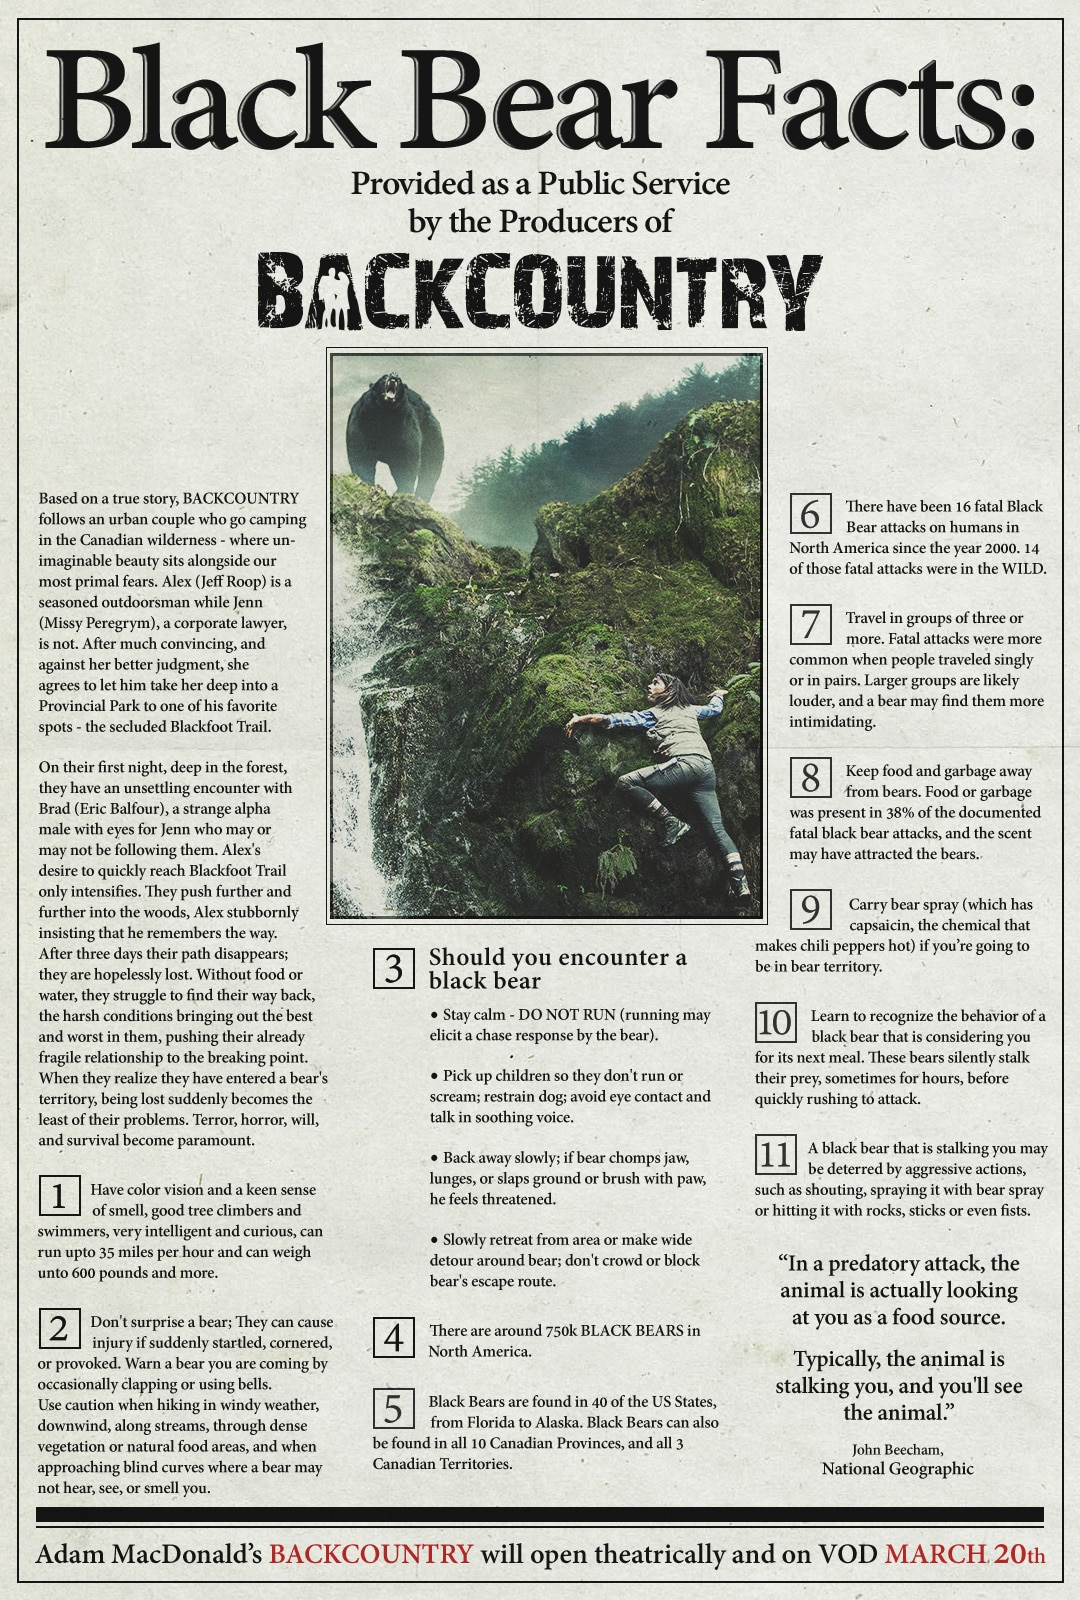 Backcountry Vintage PSA Poster 1 - Backcountry Lays Down the Rules of the Wild